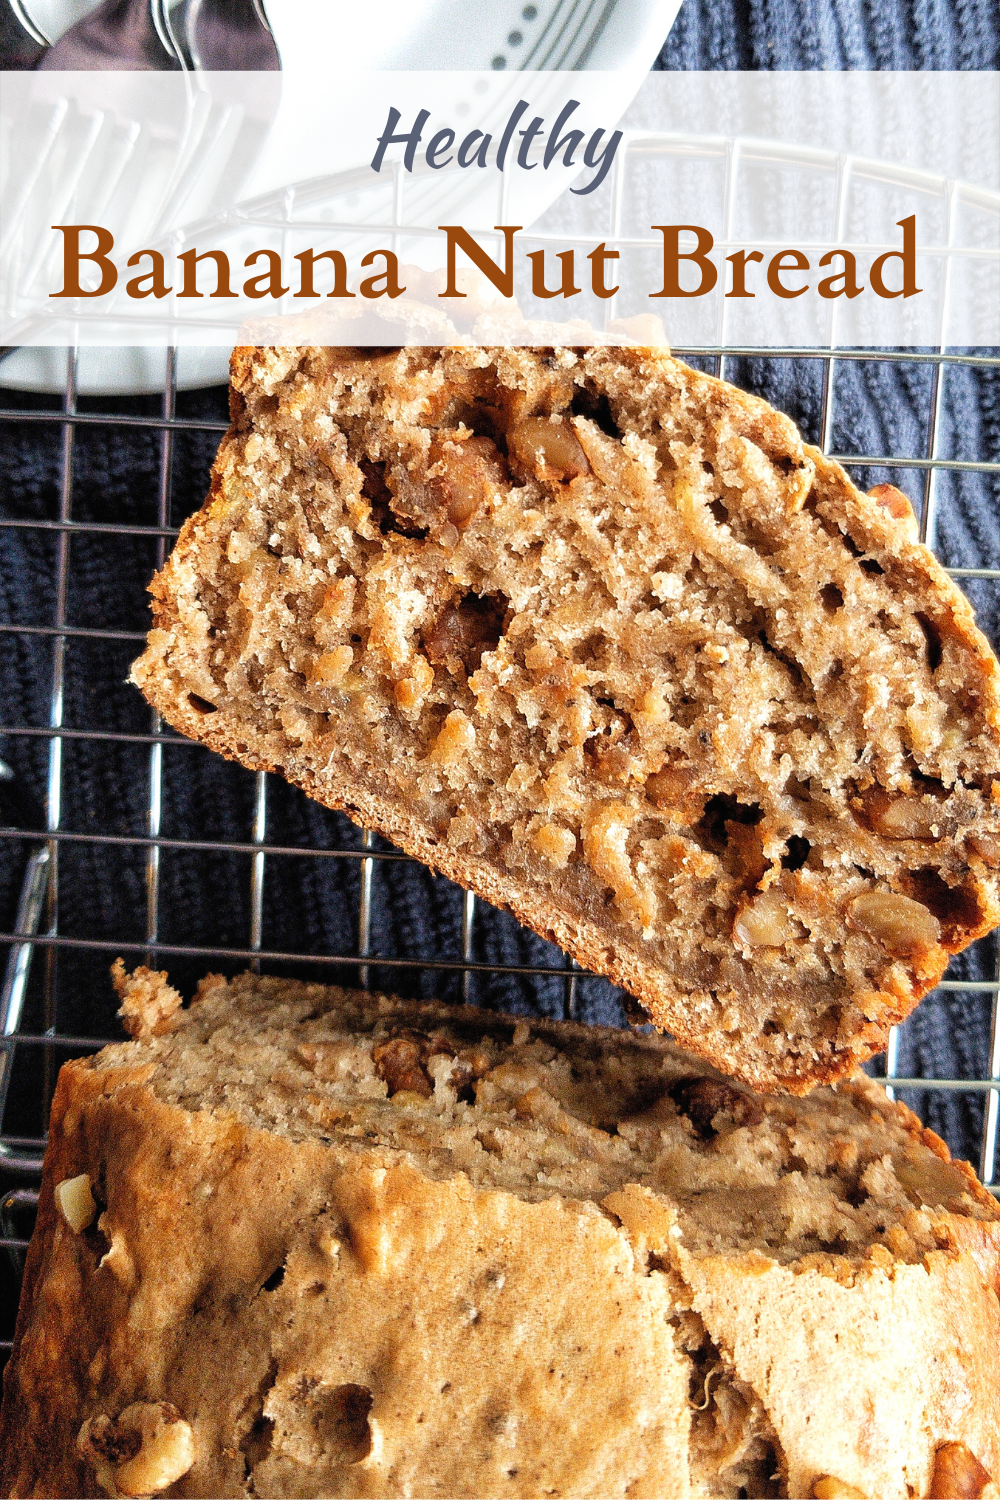 Pinnable image for Pinterest of banana bread with one slice cut